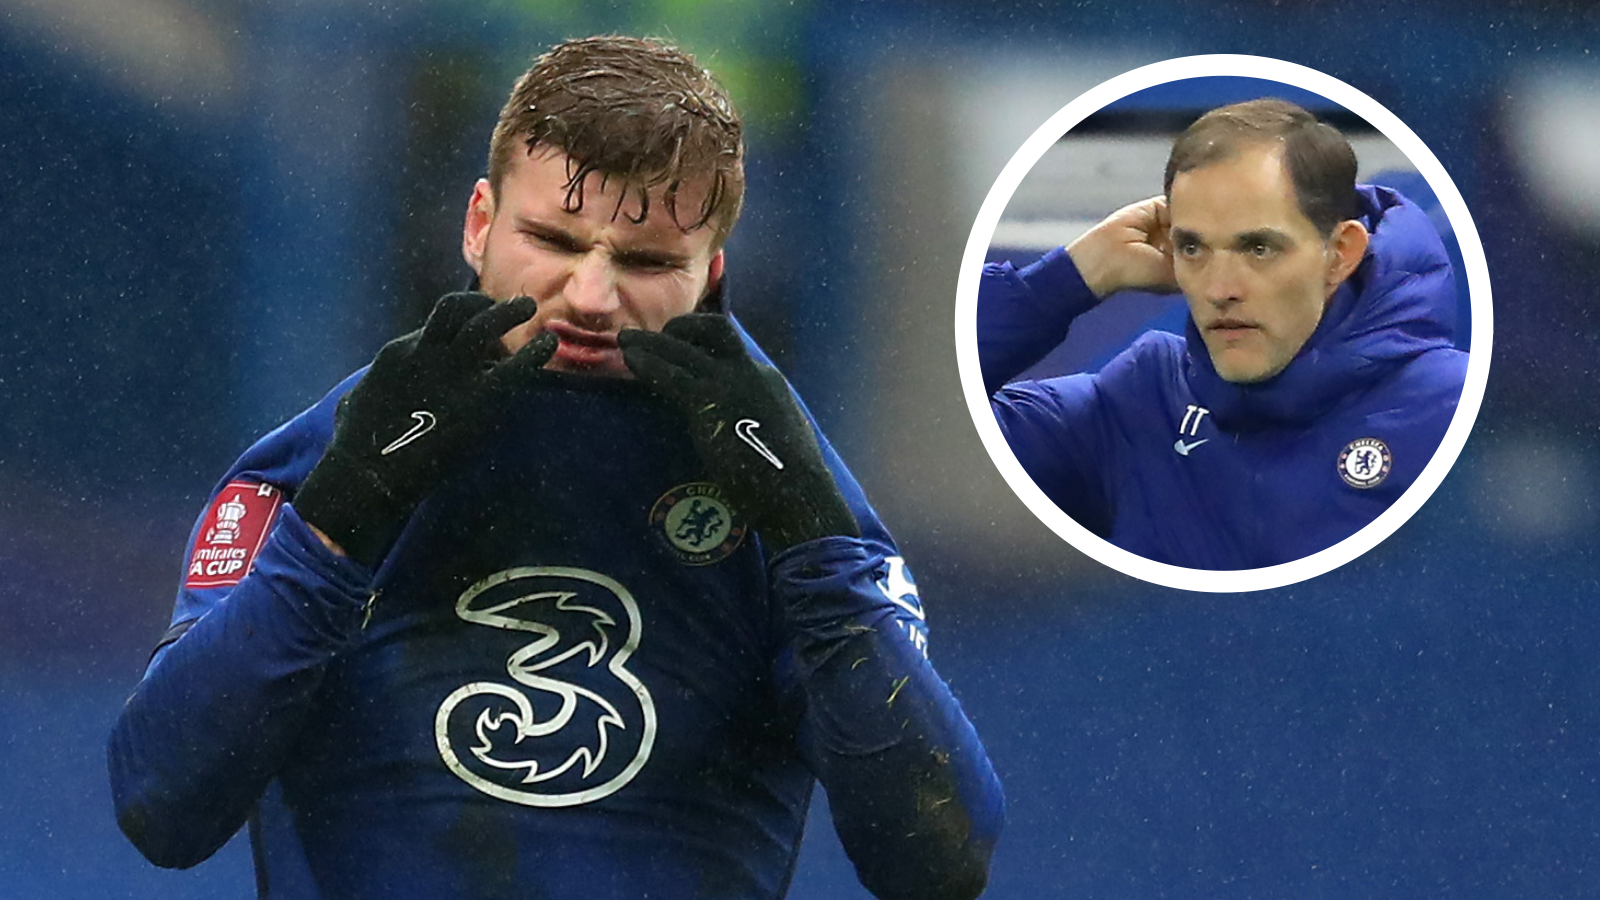 'No hugs or warm words can help Werner' - Tuchel says Chelsea star needs lucky break amid goal drought